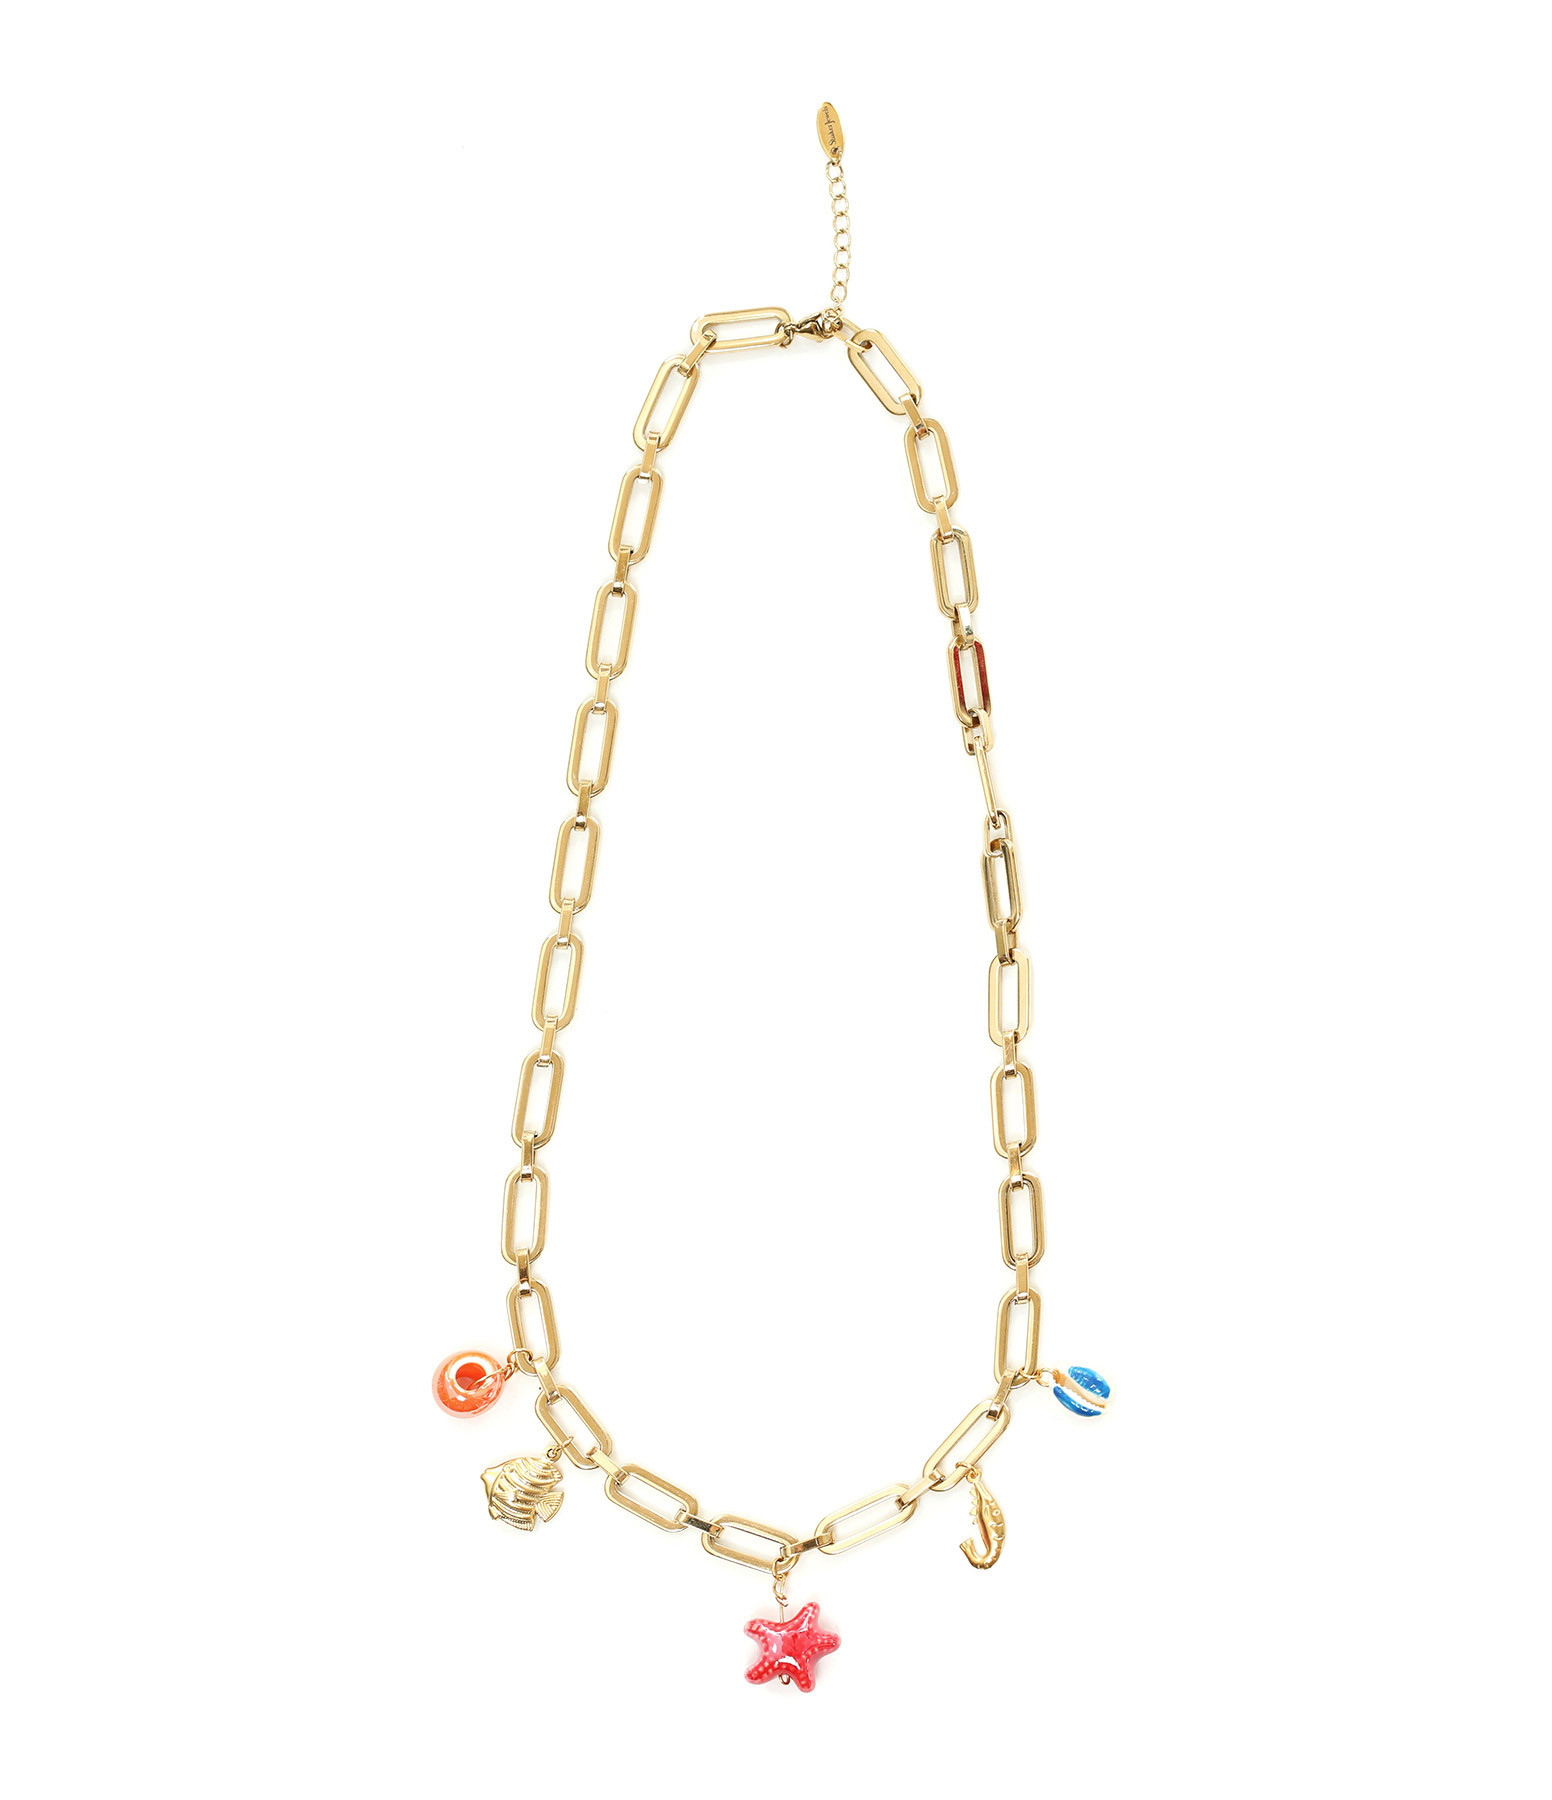 SHAKER JEWELS - Collier Naora Charms Plaqué Or